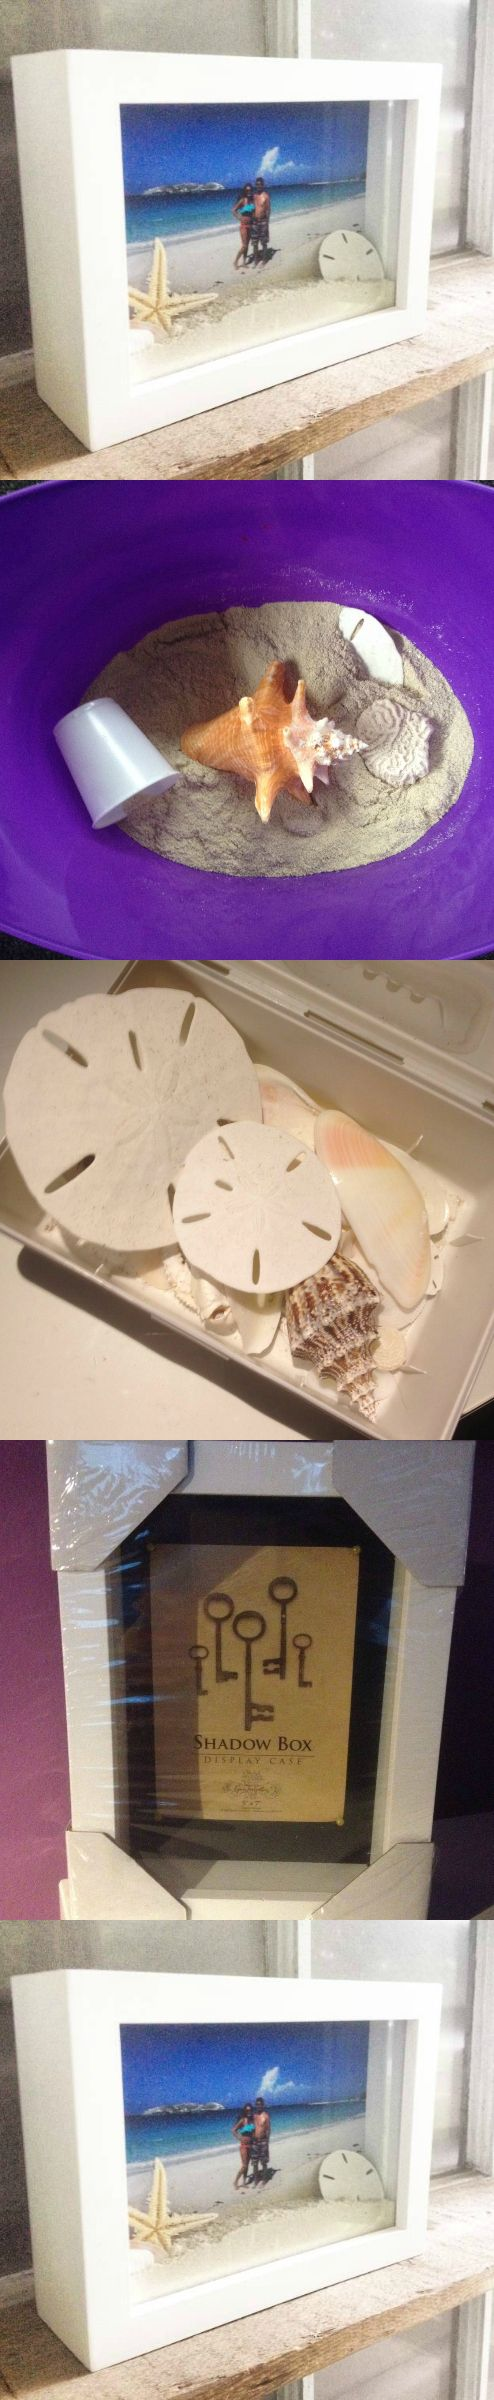 What to do with your seashells and sand you save from vacations: Buy a shadow box frame and pick a picture from vacation that you took next to the ocean. Place the sand from that beach in the shadow box, add your seashells, sand dollars, starfish, etc. and you have a cheap and easy vacation keepsake! #ocean_crafts_gifts